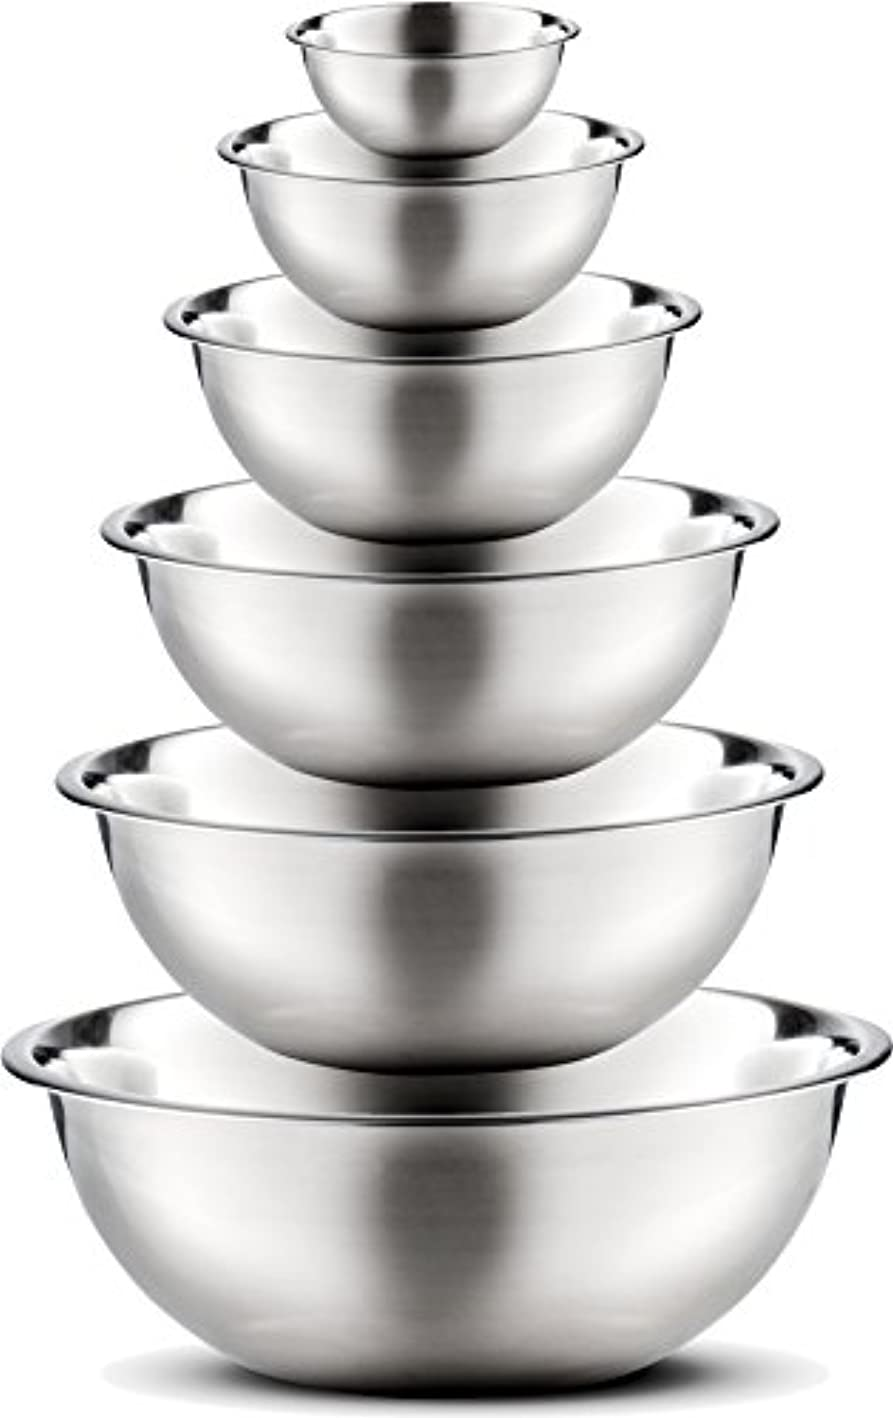 Stainless Steel Mixing Bowls by Finedine (Set of 6) Polished Mirror Finish Nesting Bowl, ? - 1.5-3 - 4-5 - 8 Quart - Cooking Supplies